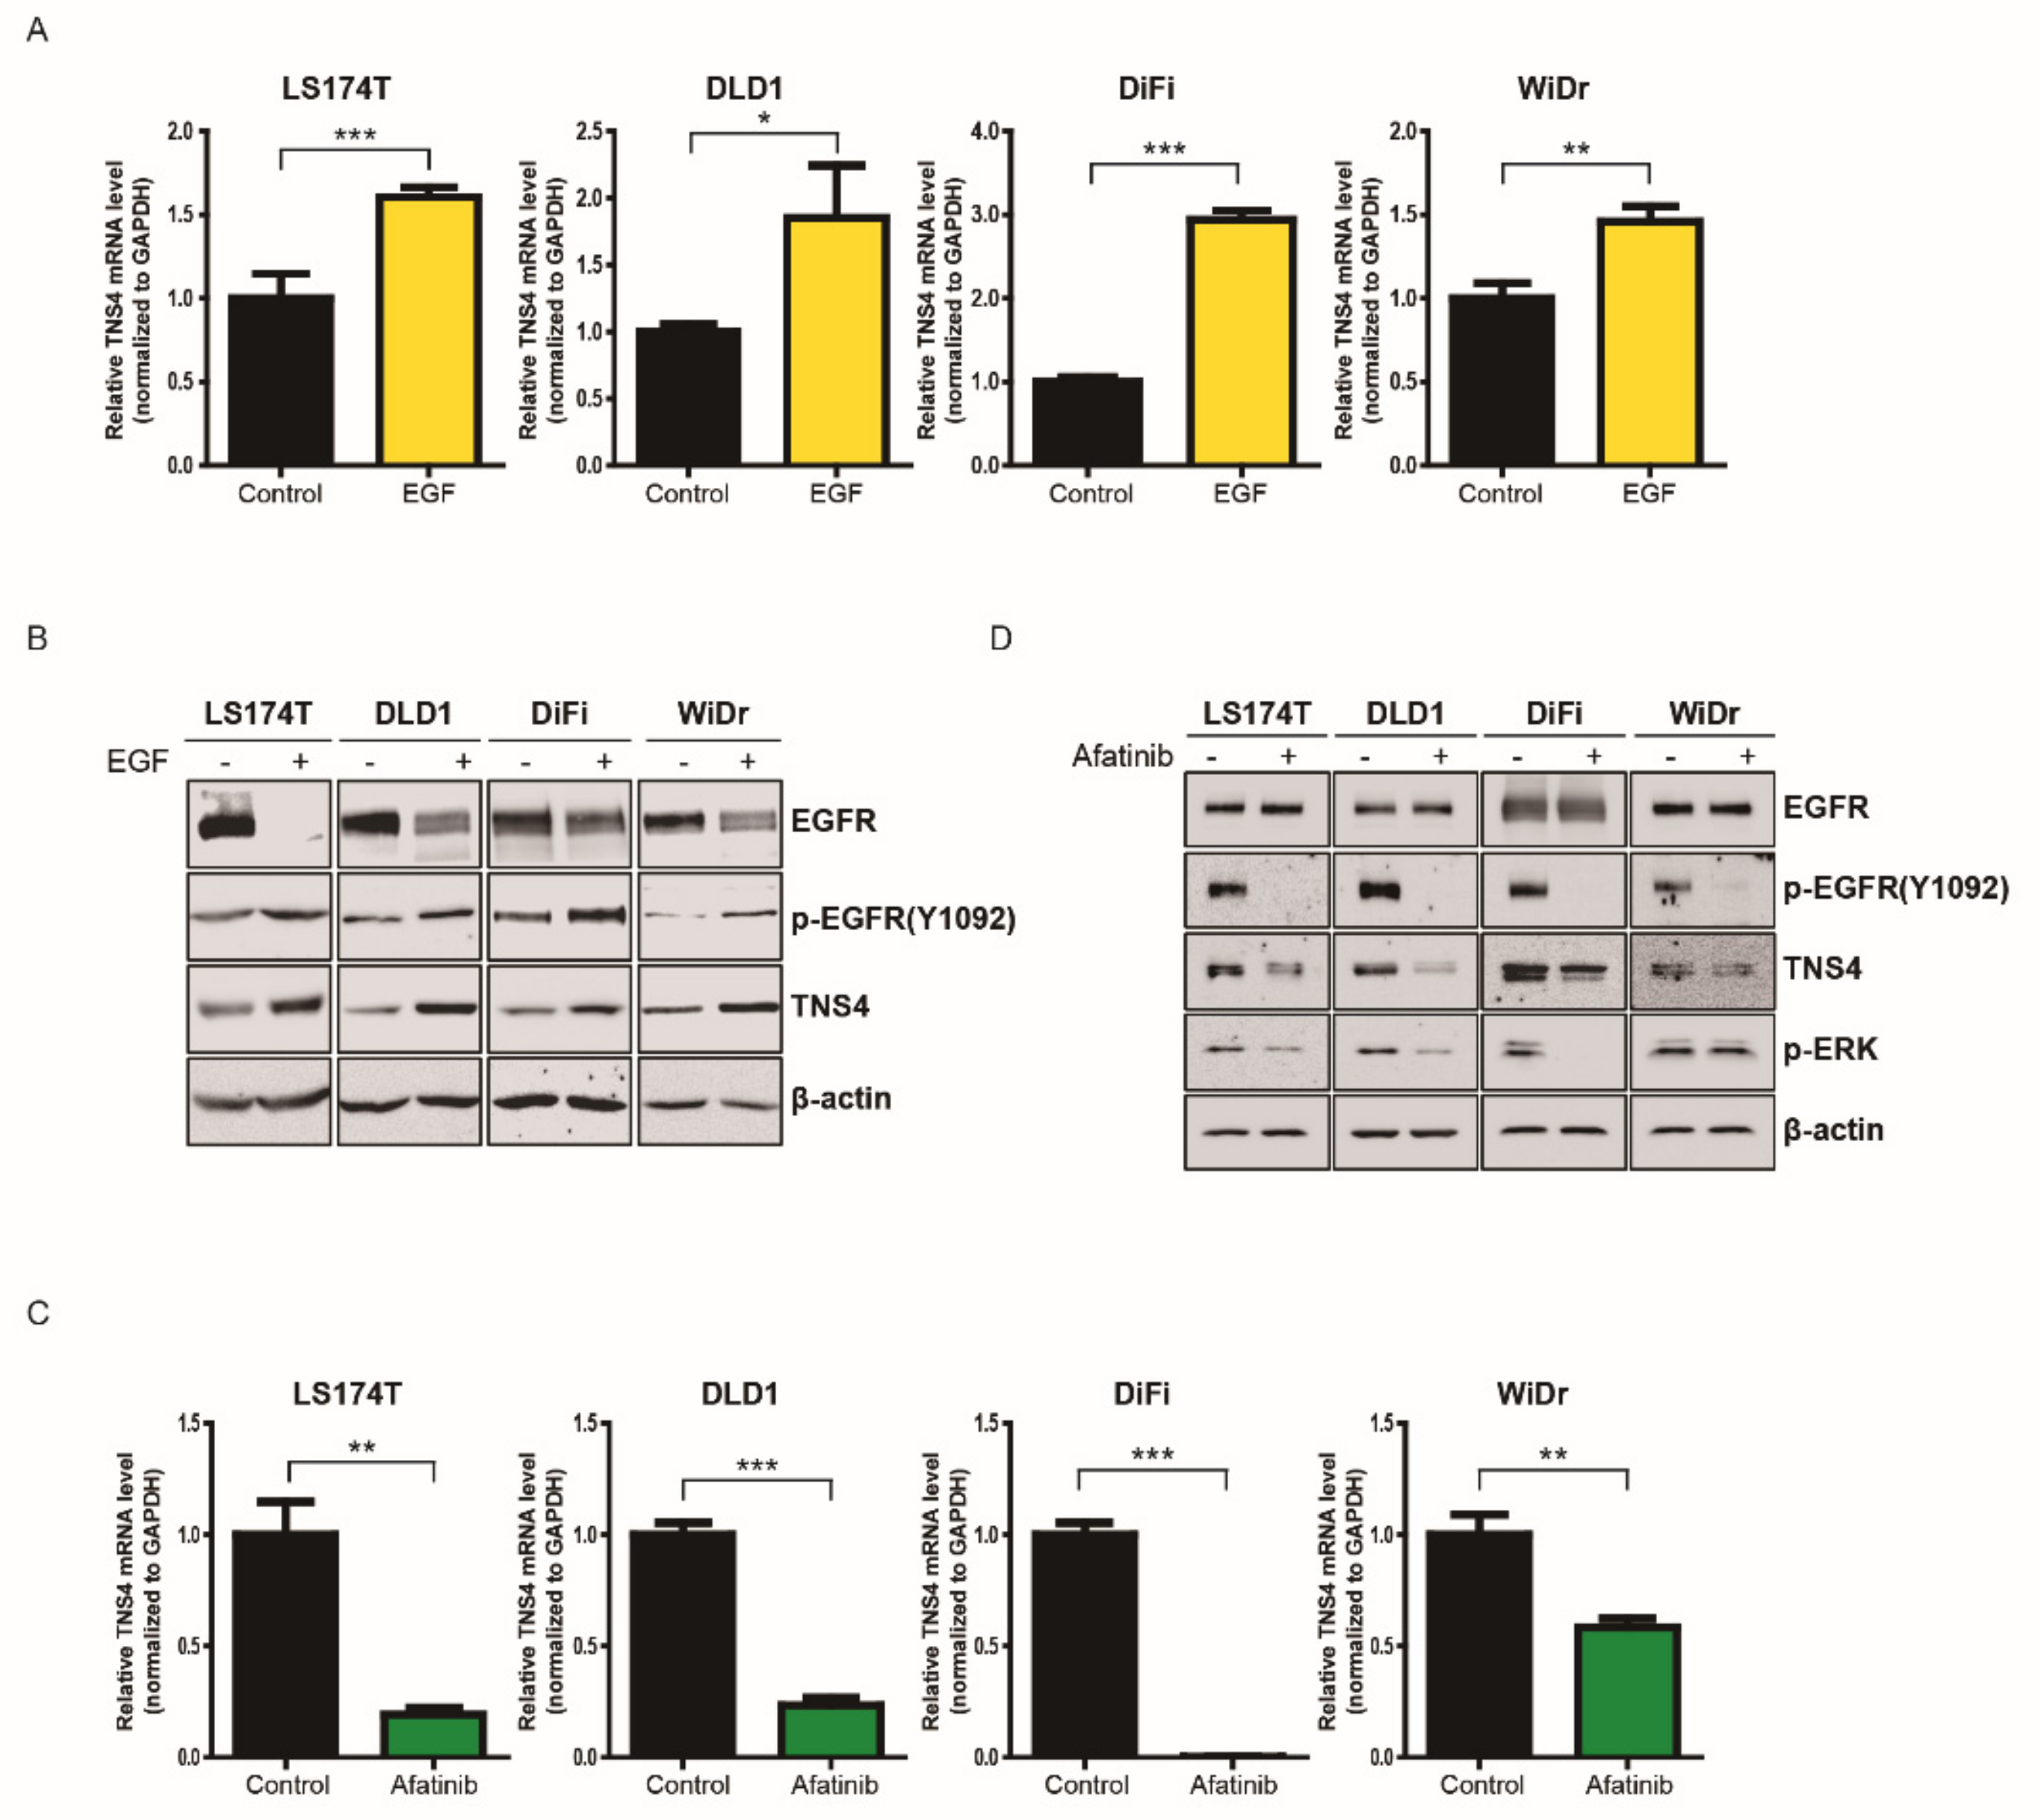 Cells Free Full Text Whole Transcriptome Analysis Identifies Tns4 As A Key Effector Of Cetuximab And A Regulator Of The Oncogenic Activity Of Kras Mutant Colorectal Cancer Cell Lines Html